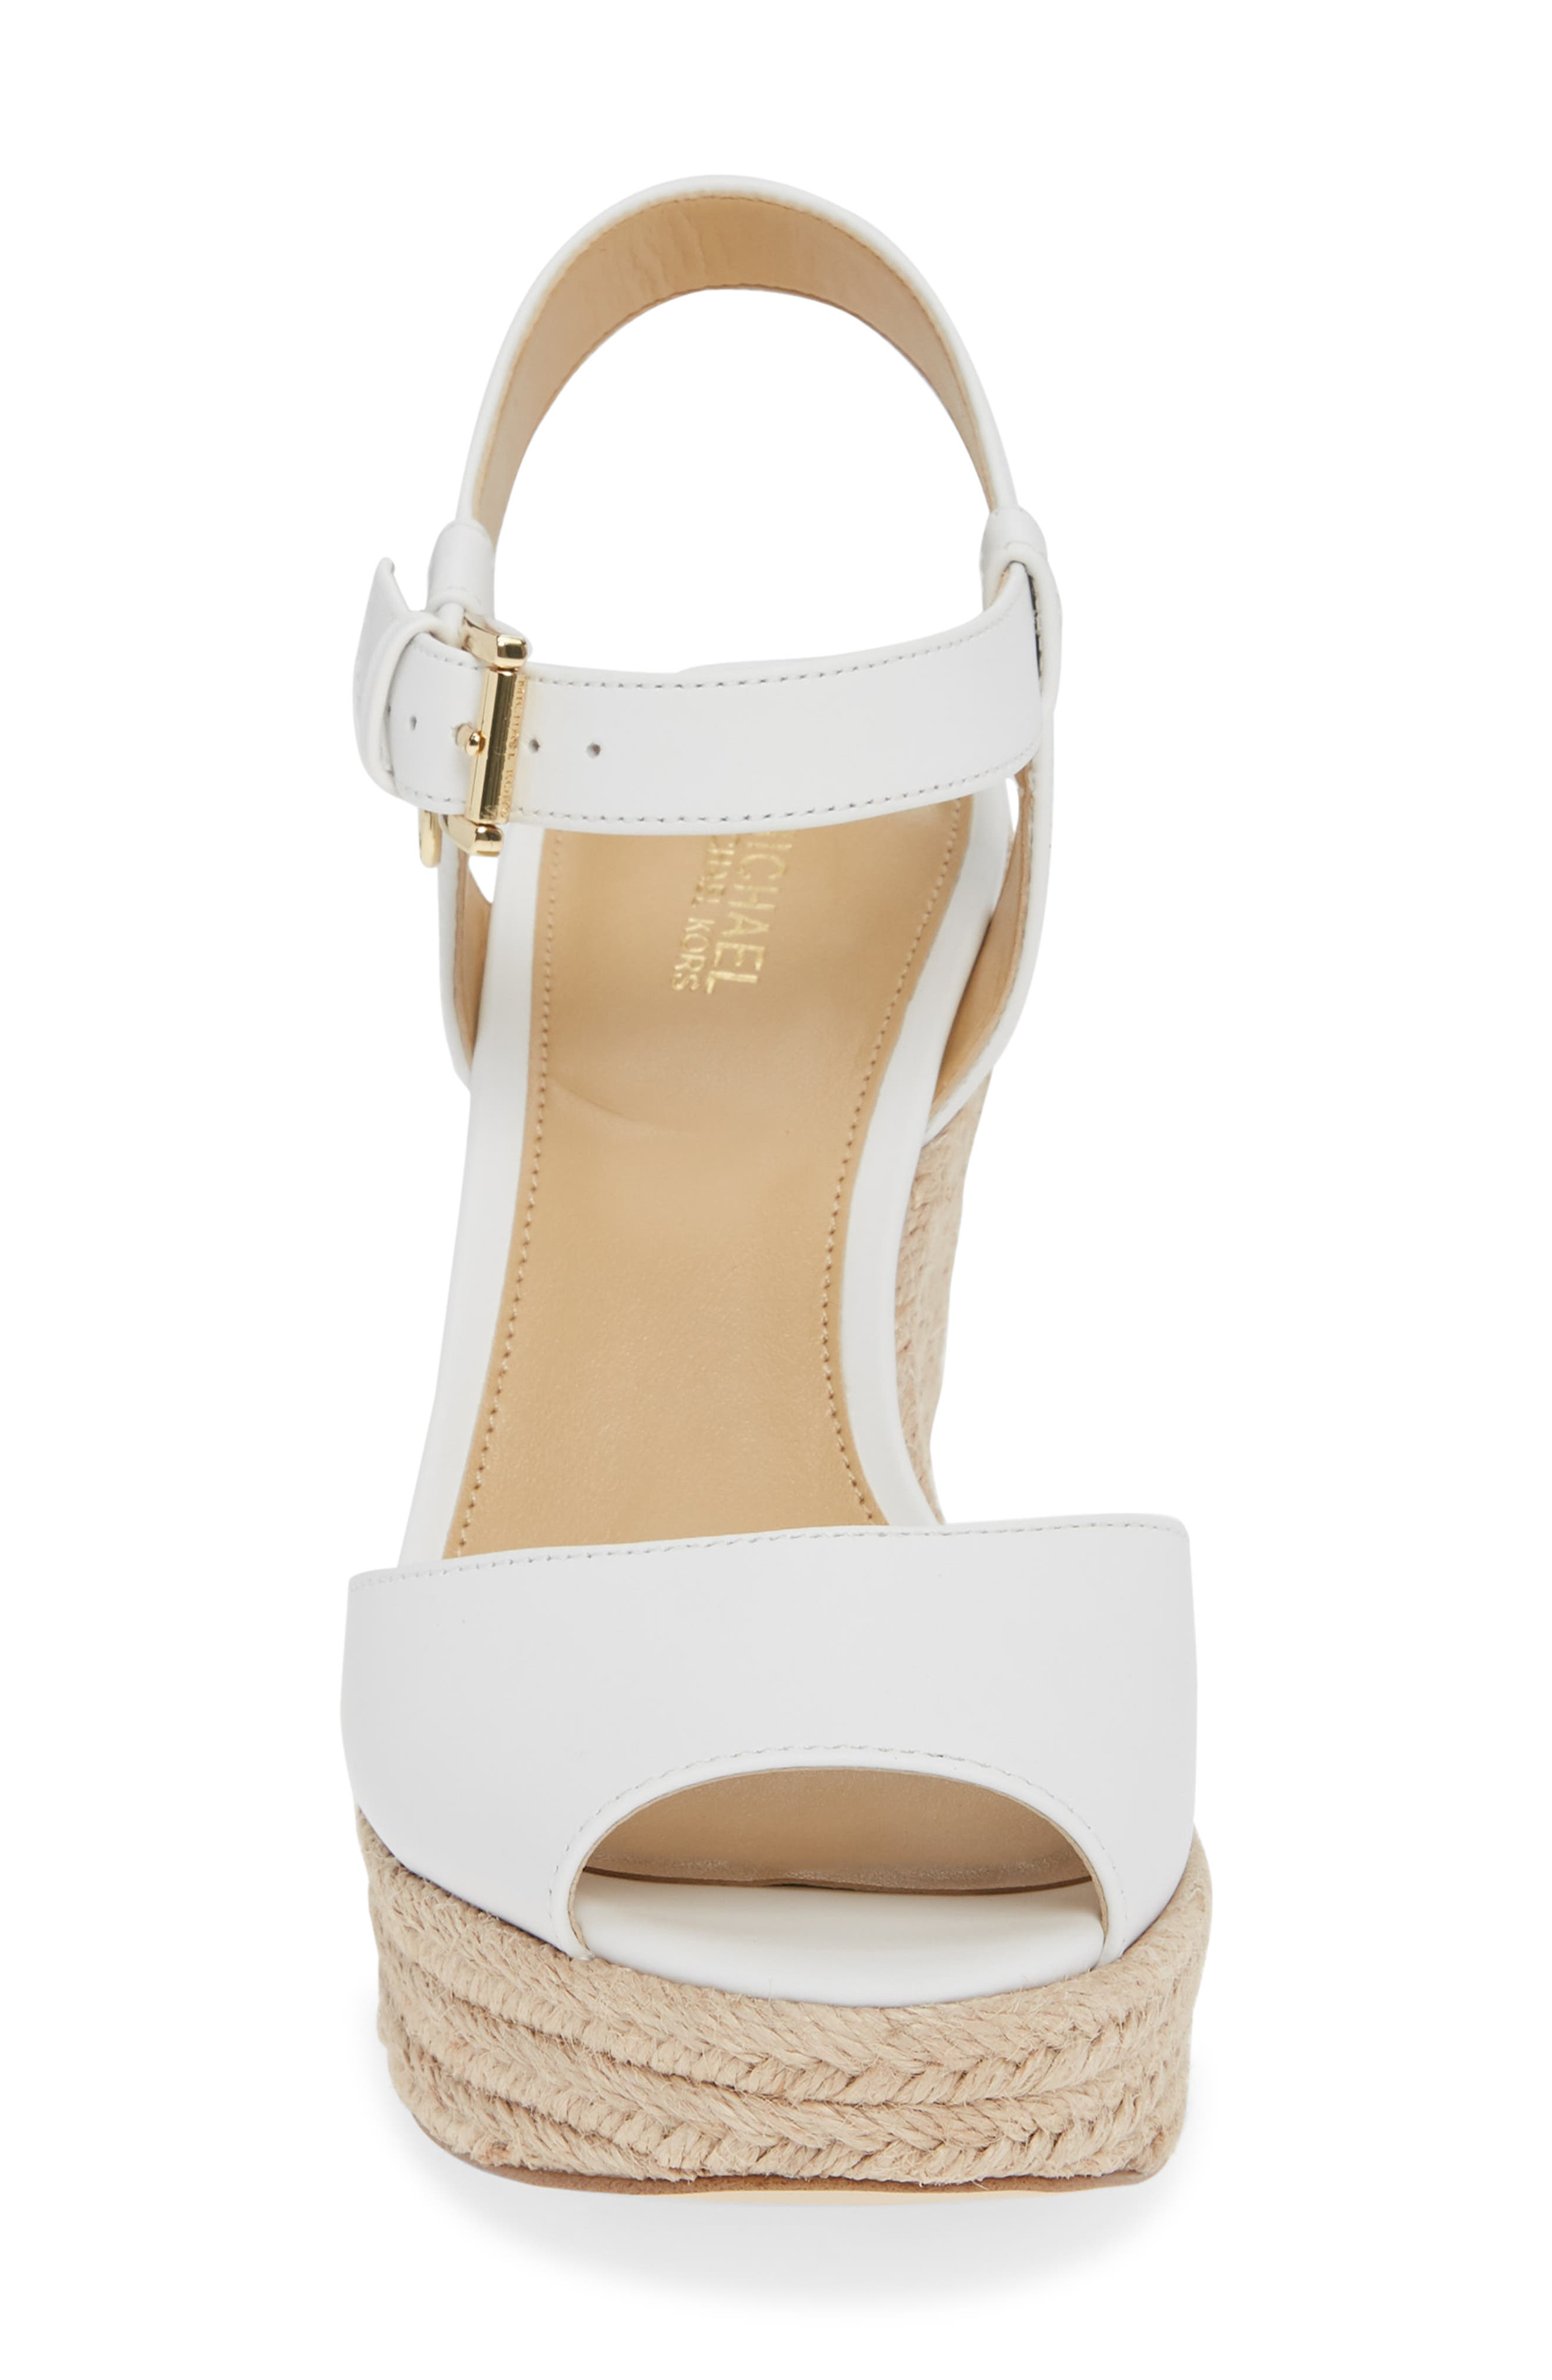 MICHAEL MICHAEL KORS, Carlyn Espadrille Wedge Sandal, Alternate thumbnail 4, color, 100